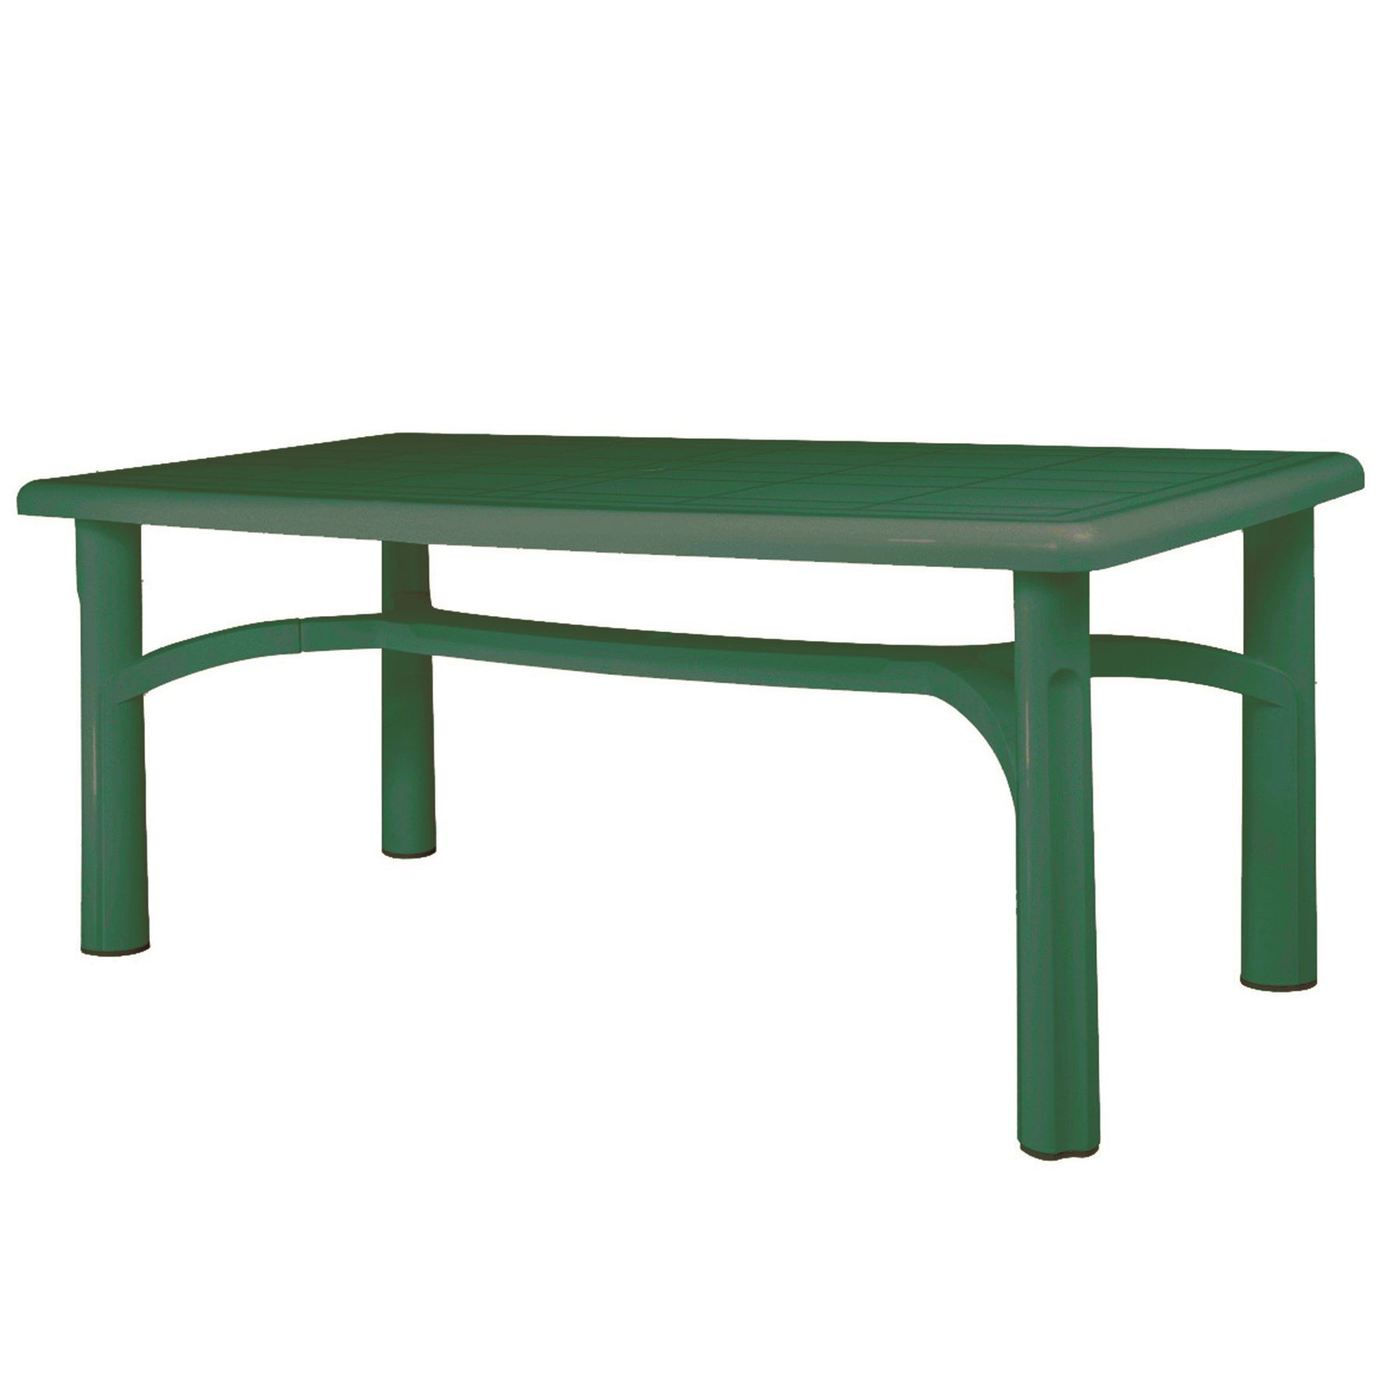 plastic garden table resol vals 180 x 90cm rectangular plastic garden dining table - green UDTMUGR